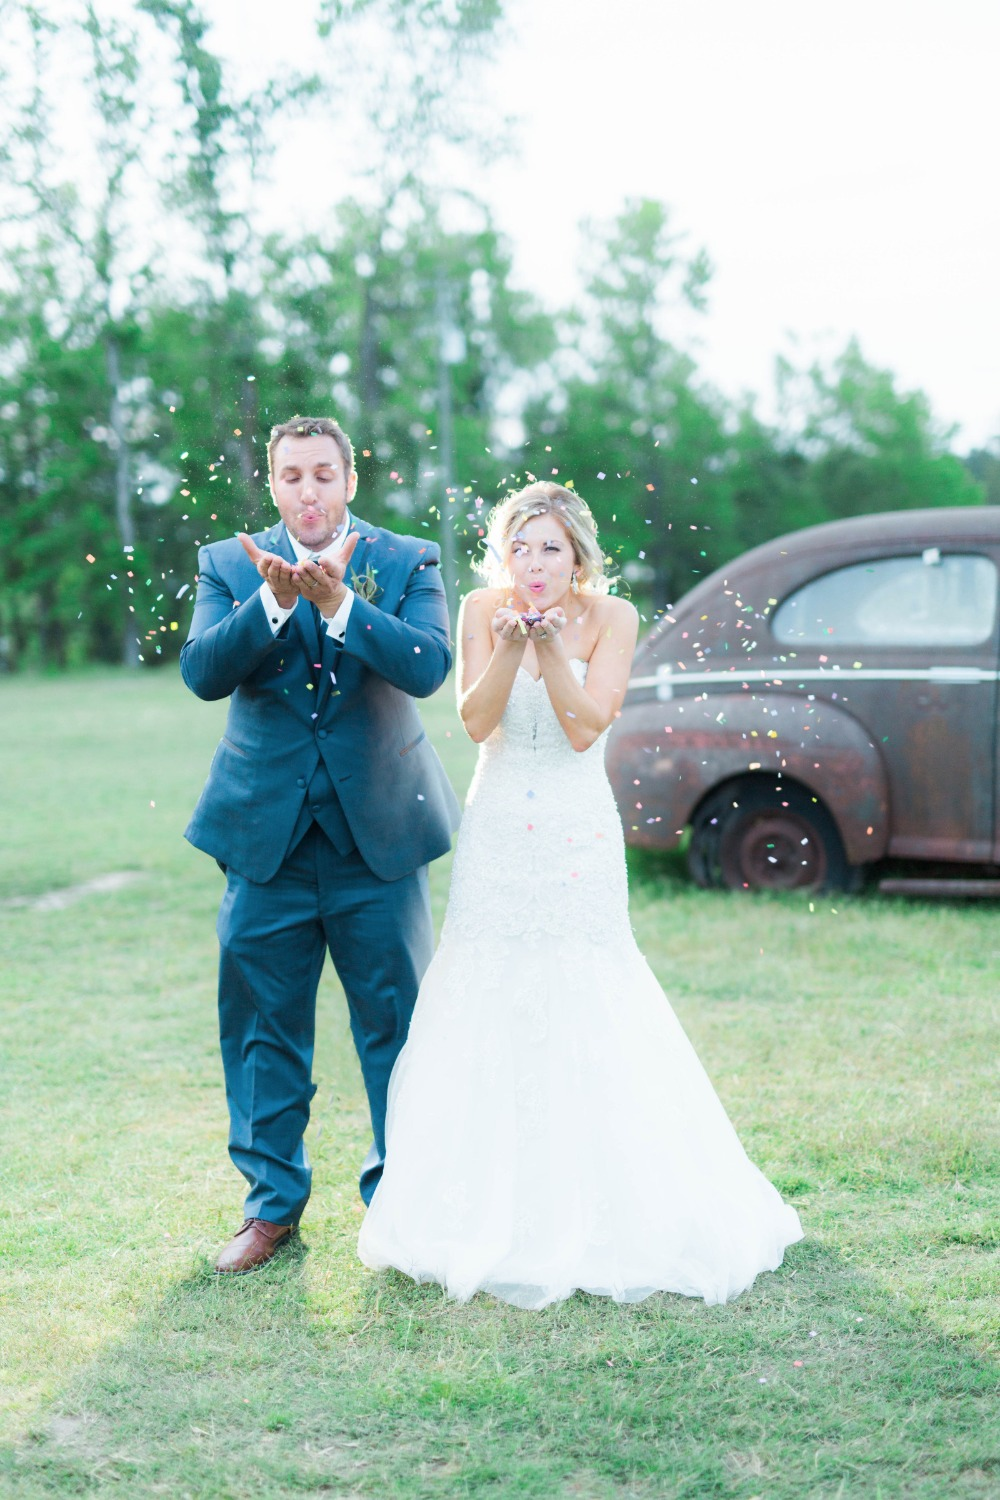 Cute confetti photo idea